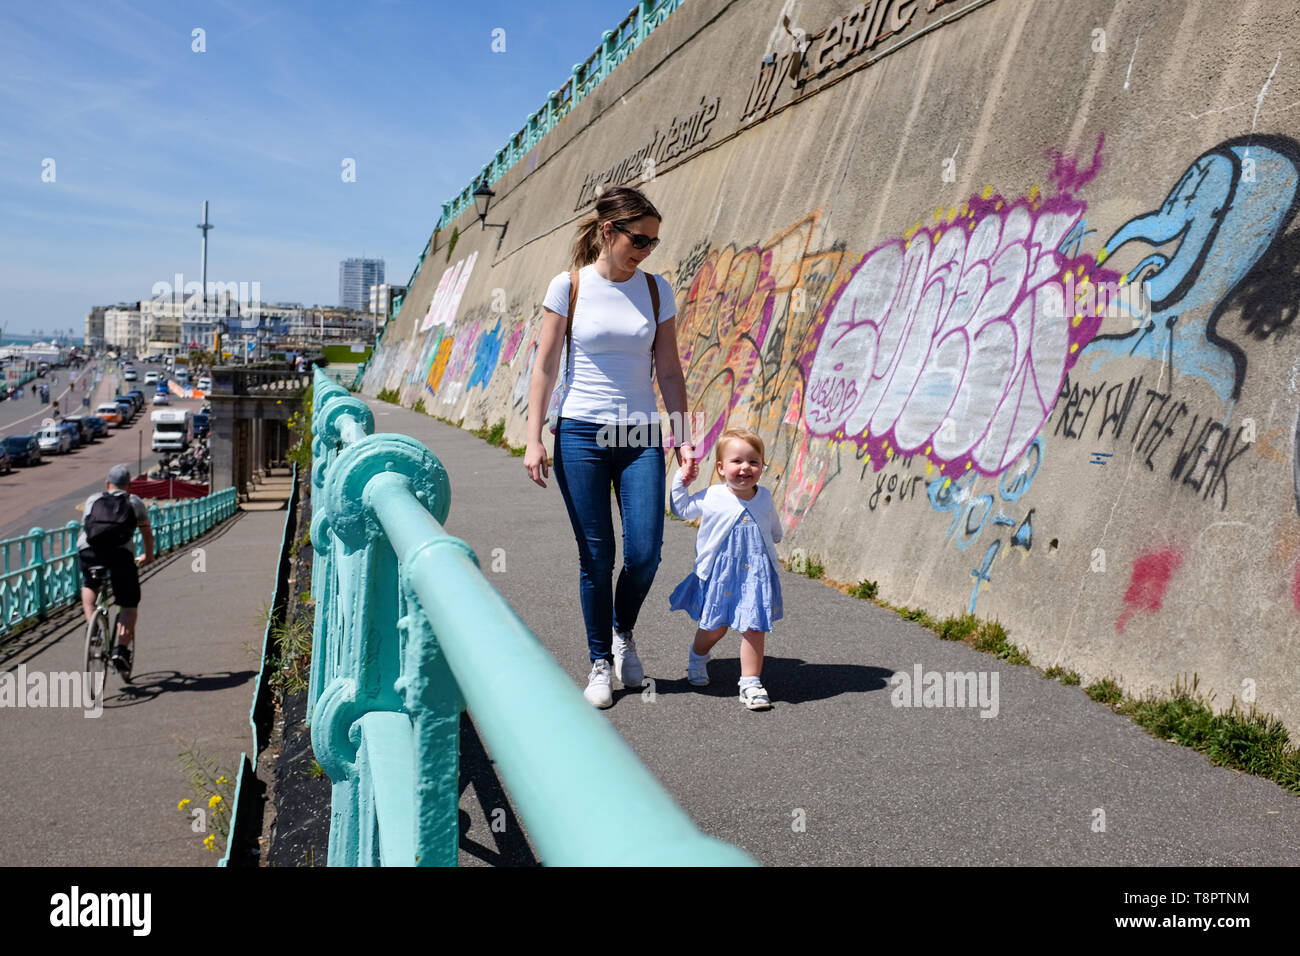 Brighton, UK. 14th May, 2019. A young mum and her 2 year daughter enjoy a walk along Brighton seafront on a hot sunny day with warmer weather forecast for the next couple of days throughout Britain . Credit: Simon Dack/Alamy Live News - Stock Image